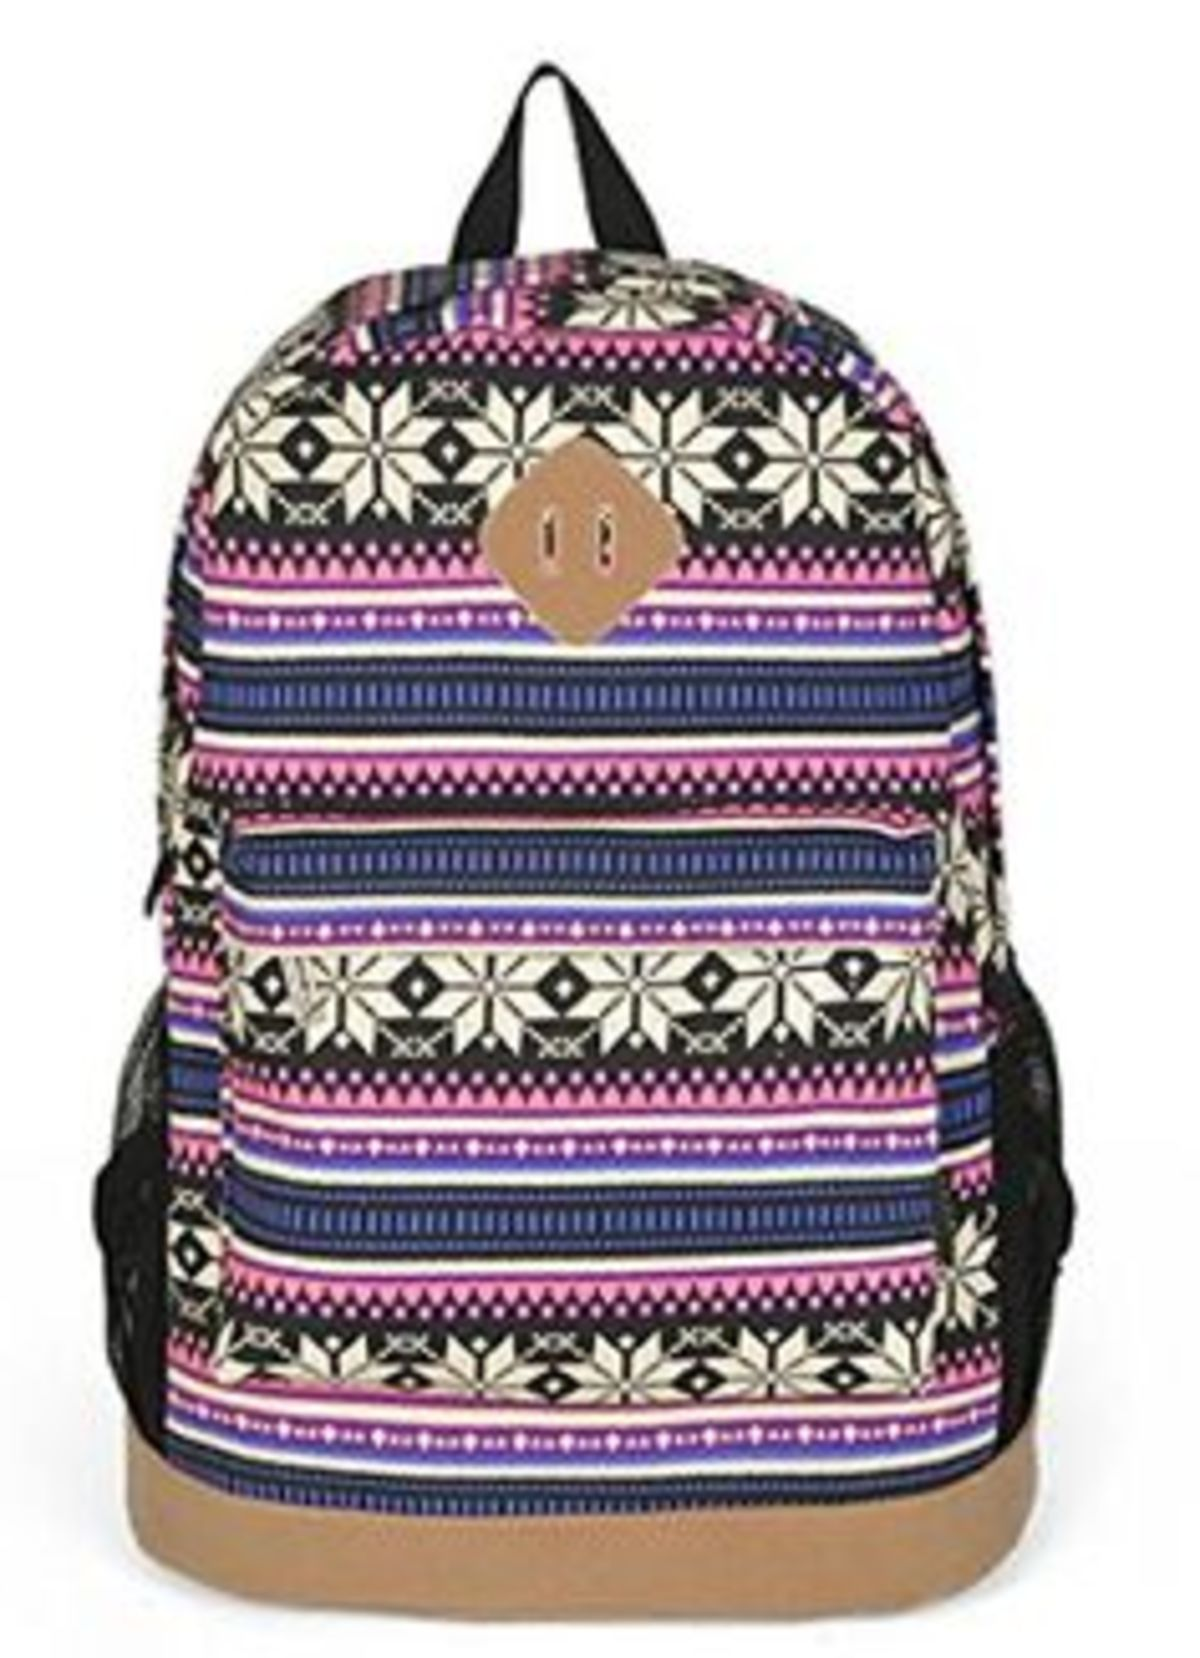 Best Backpacks For Teenage Girls | Cg Backpacks